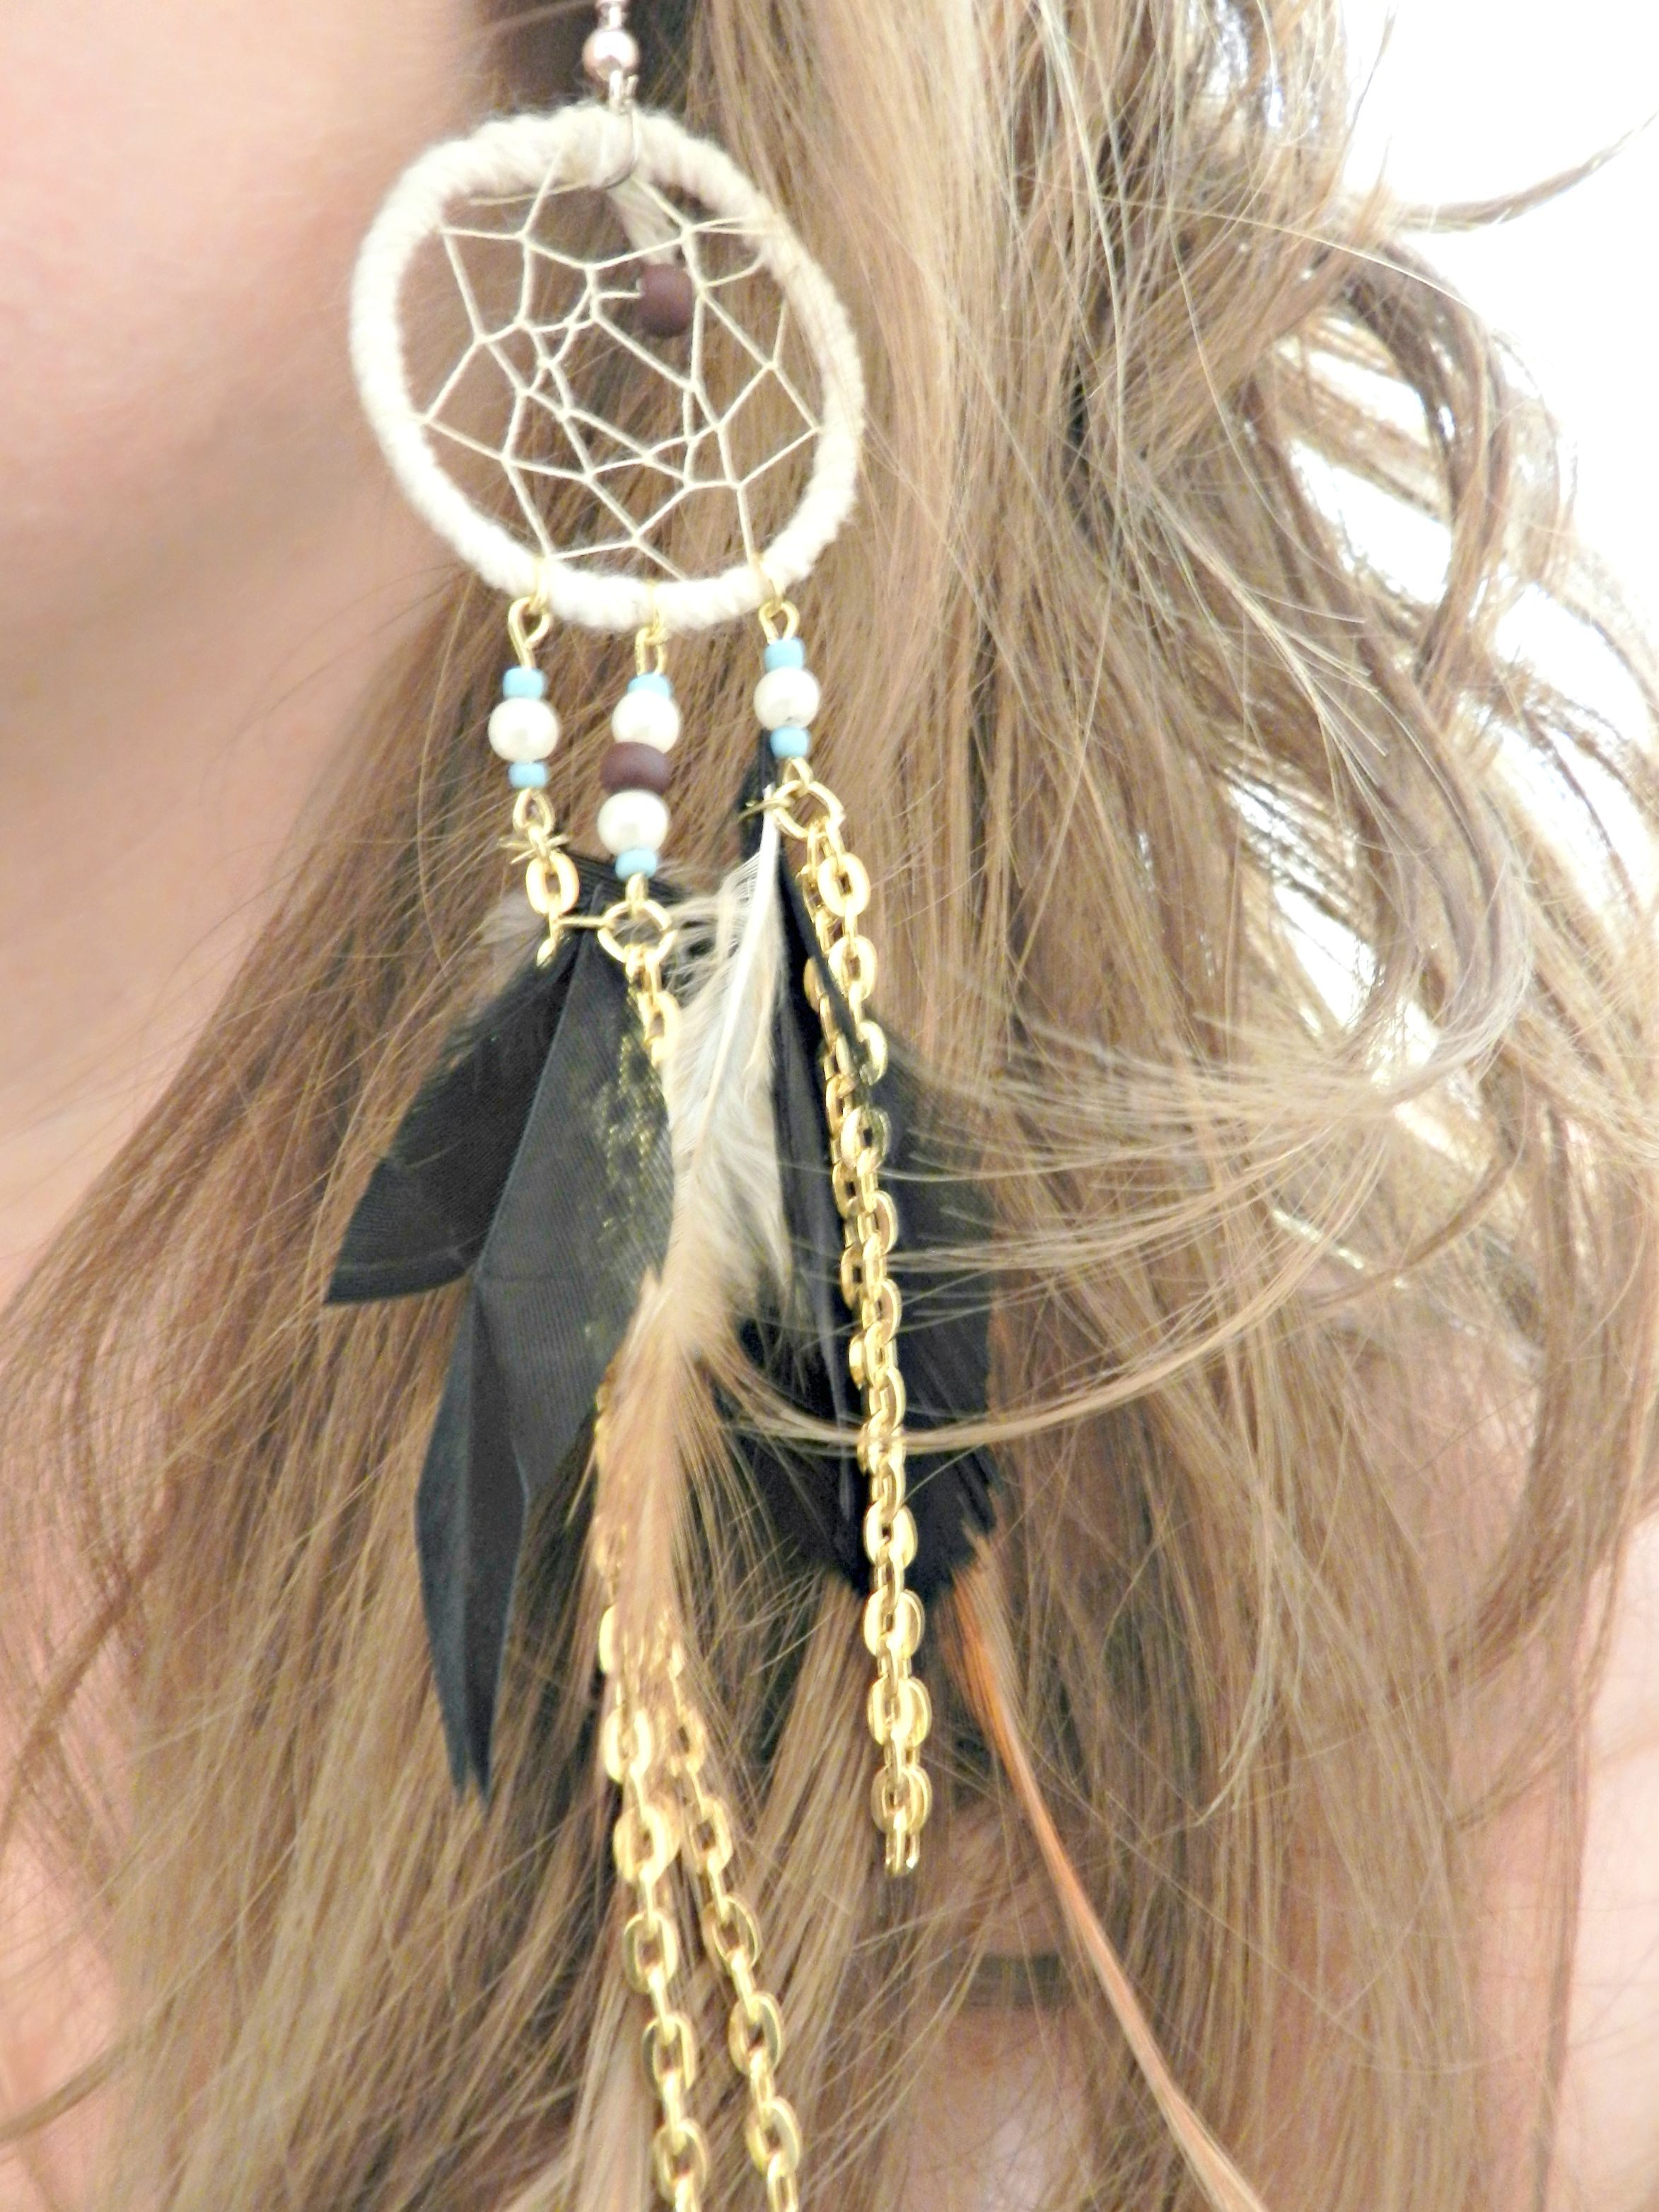 Dream Catcher Earrings!